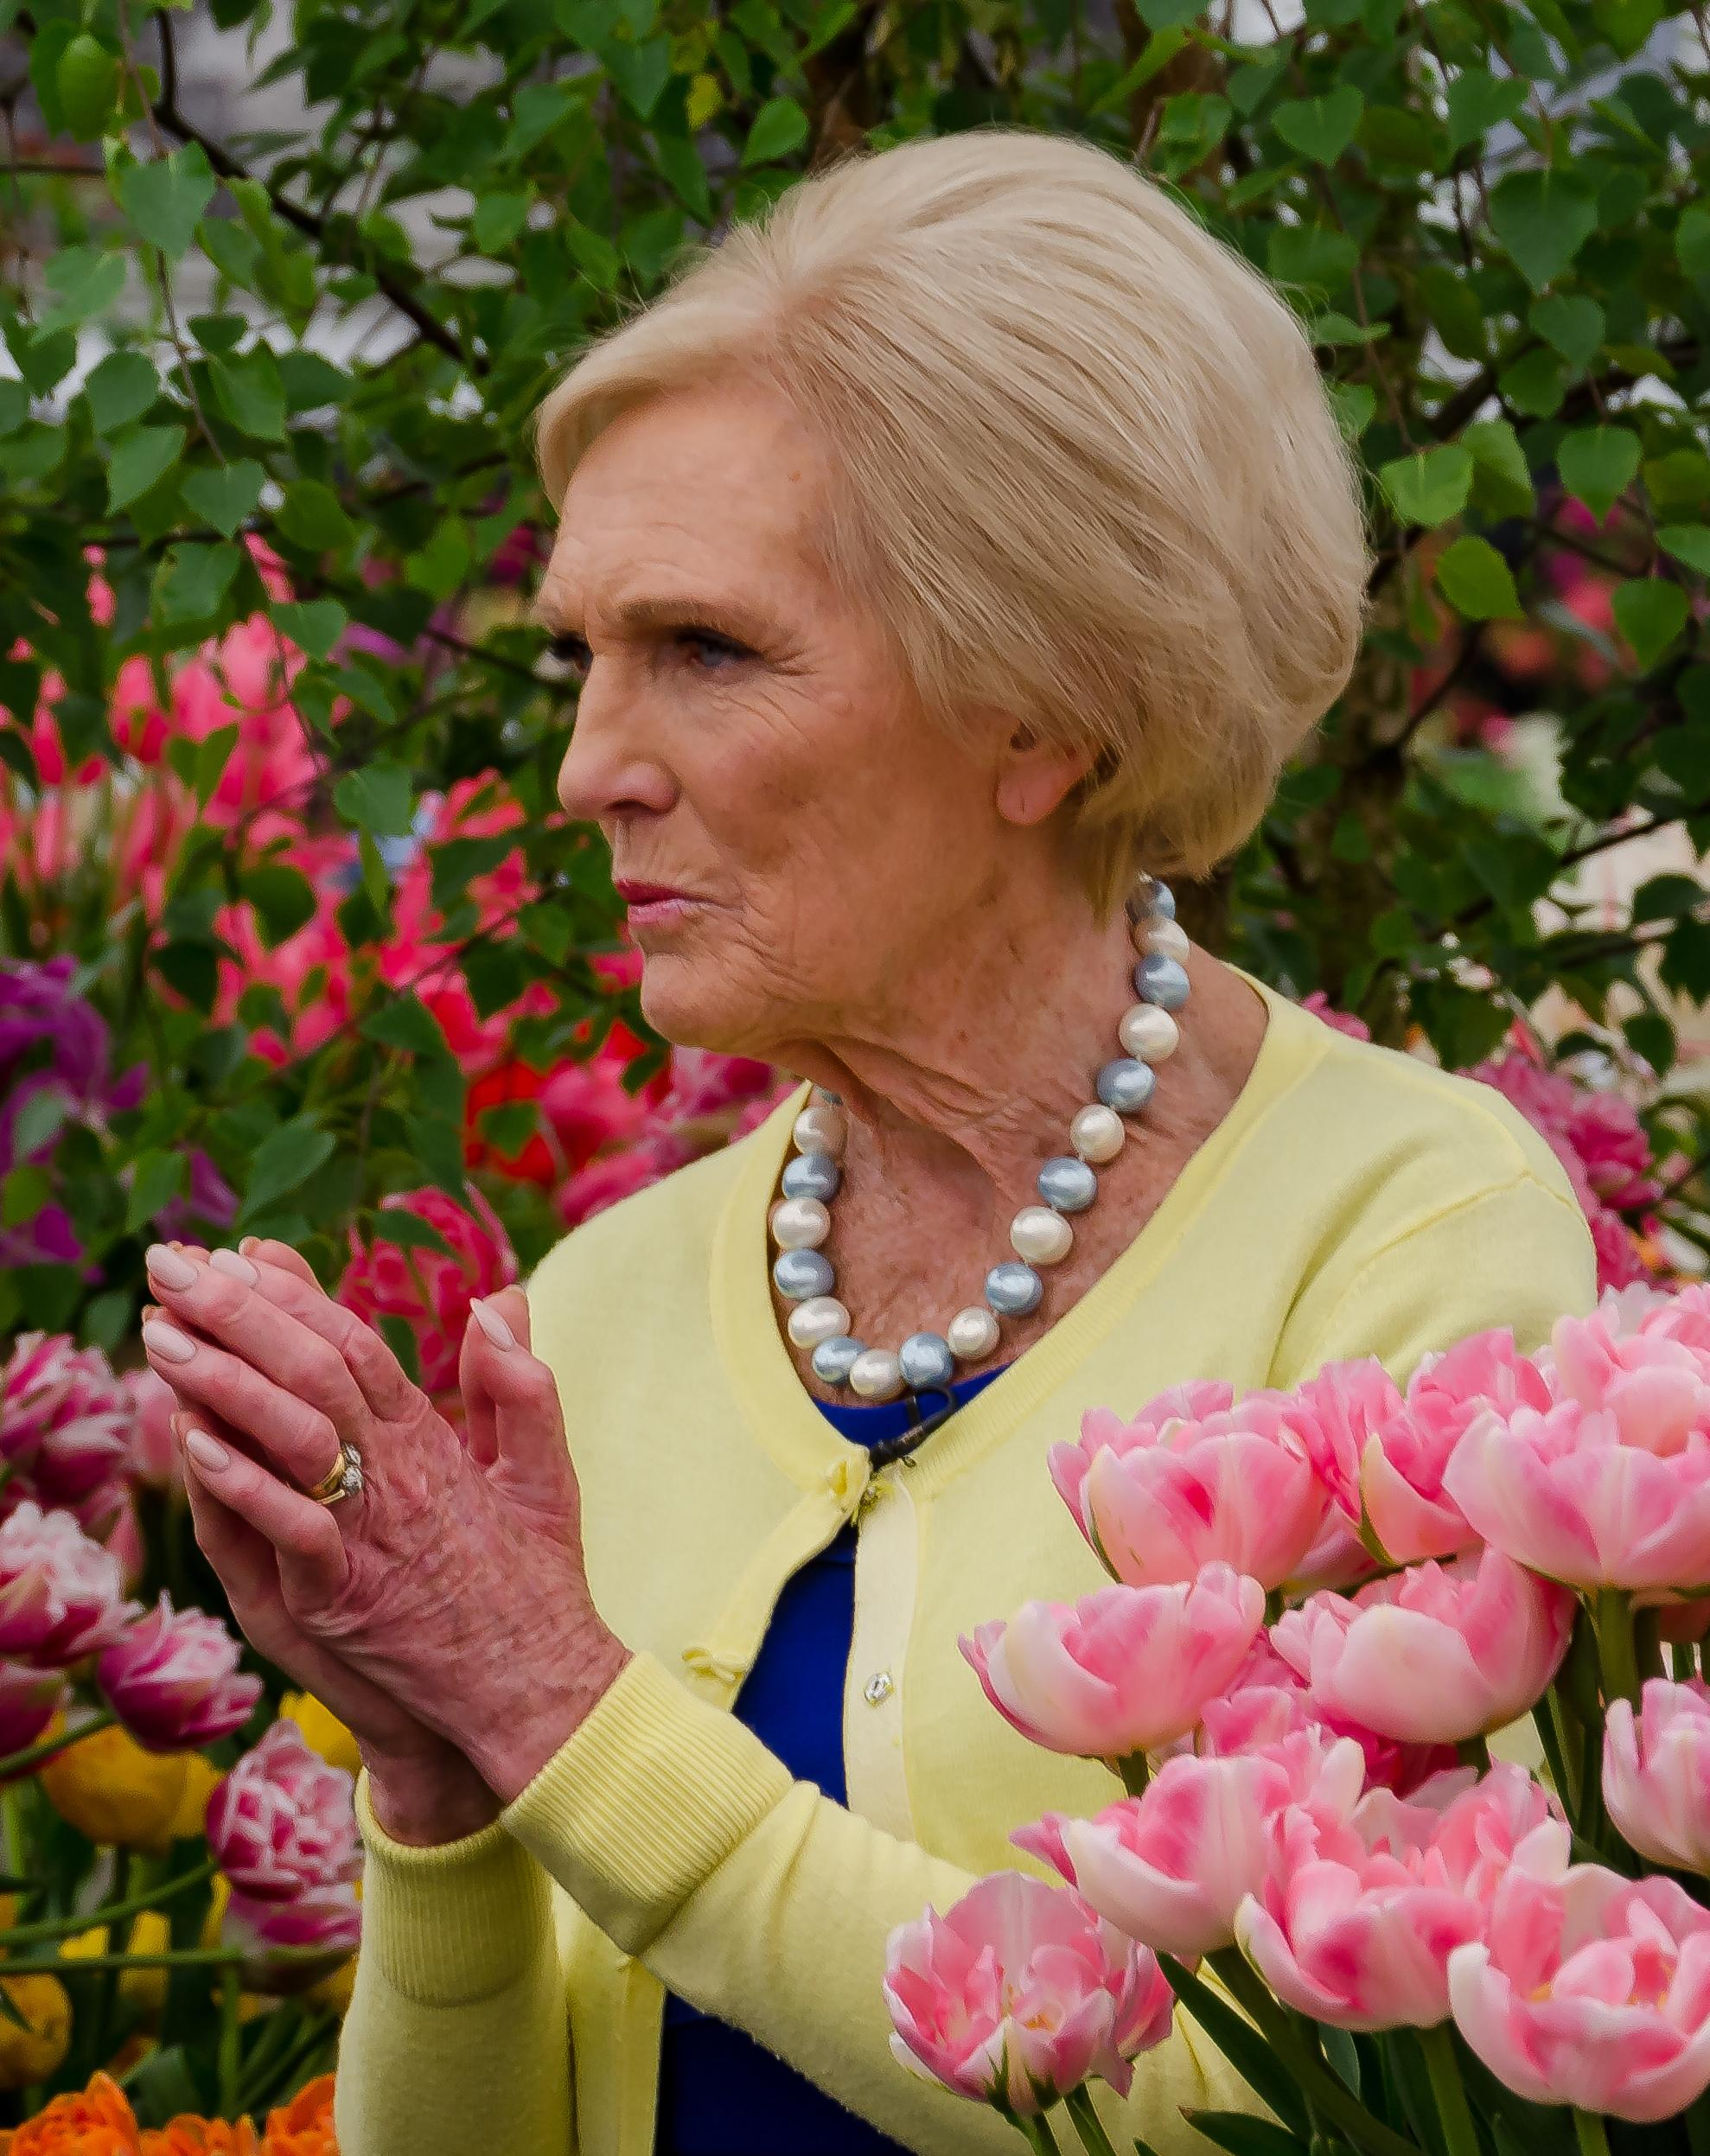 Is The Great British Bake Off Good For The Baking Industry?